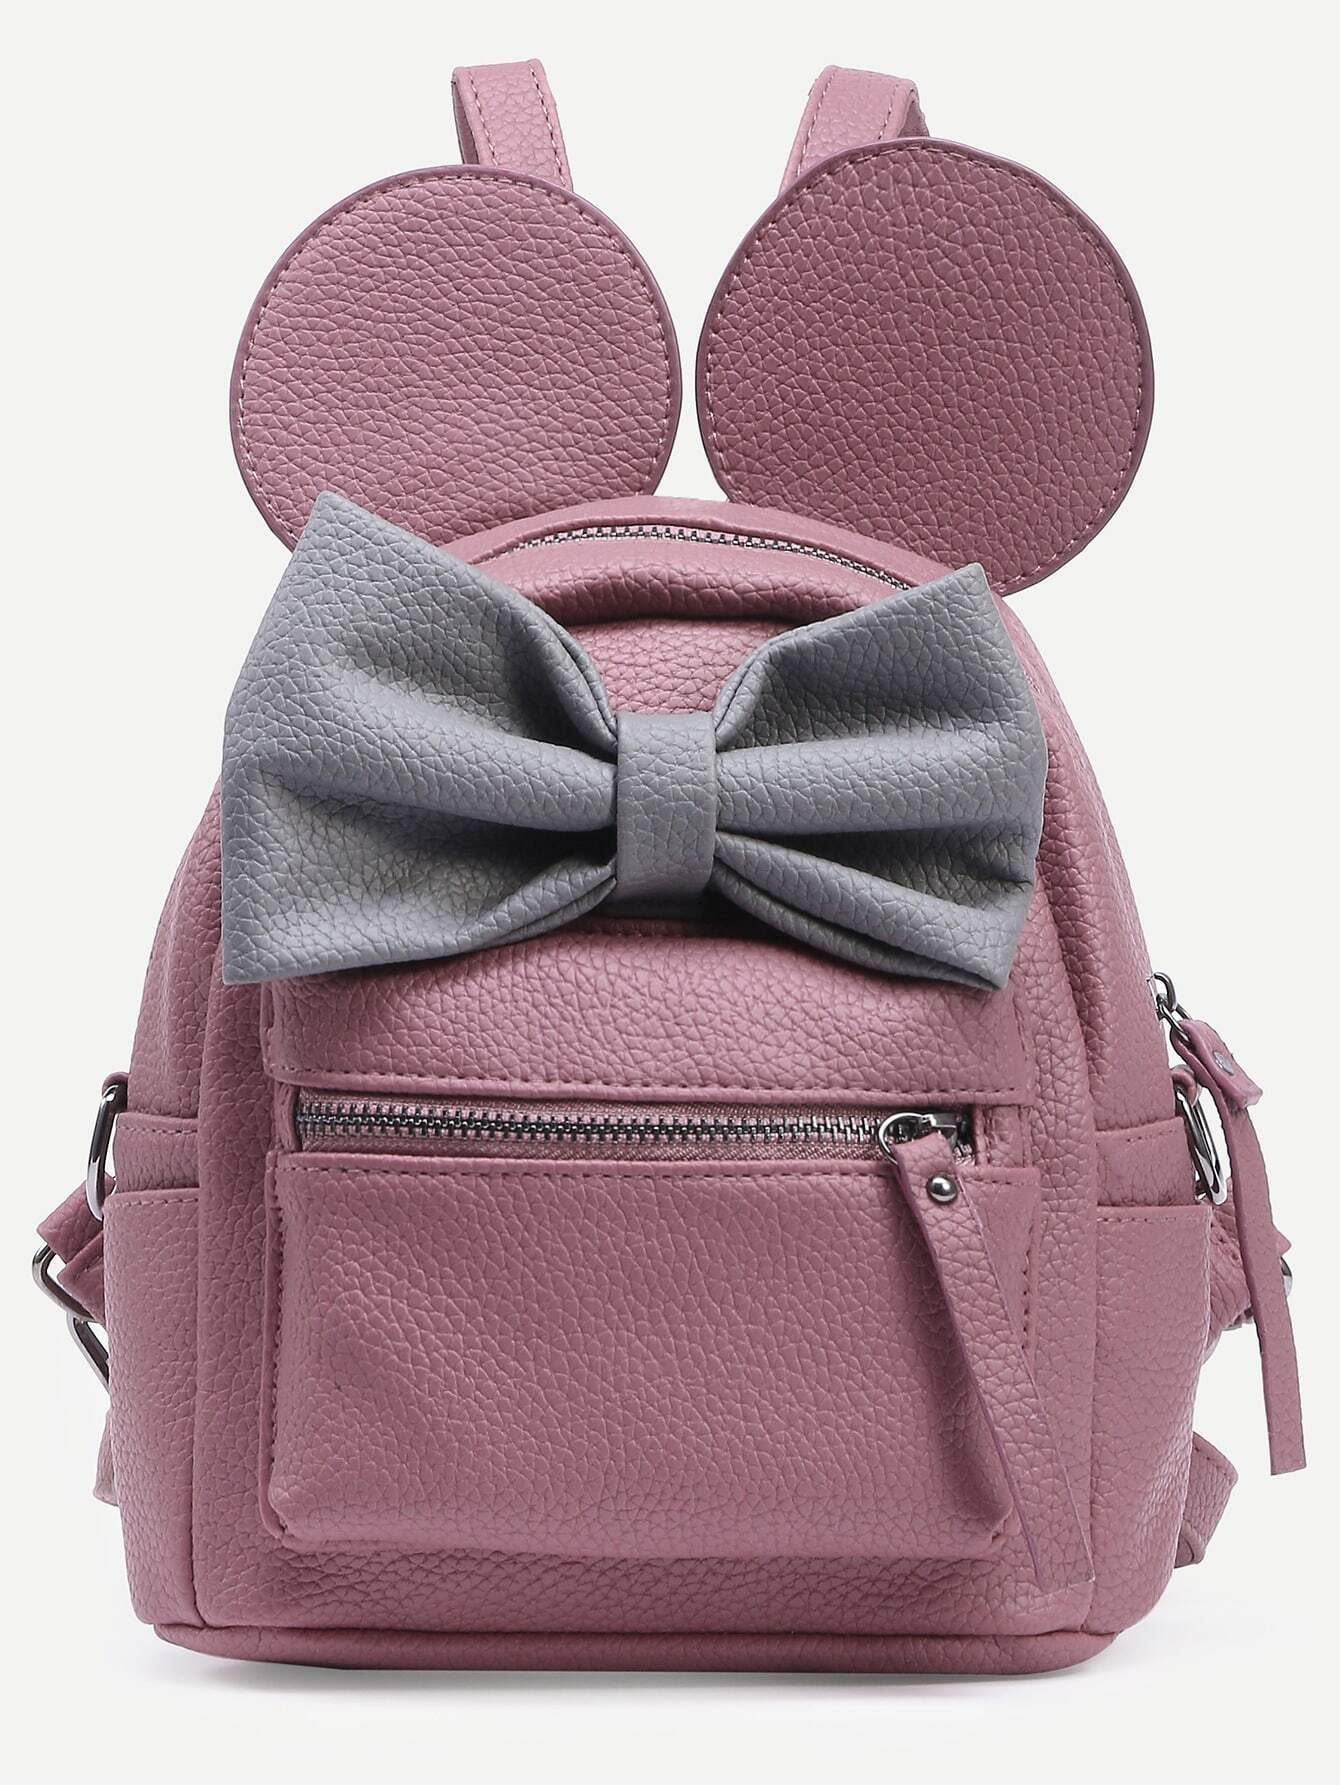 Pink Contrast Bow BackpackPink Contrast Bow Backpack<br><br>color: Pink<br>size: None